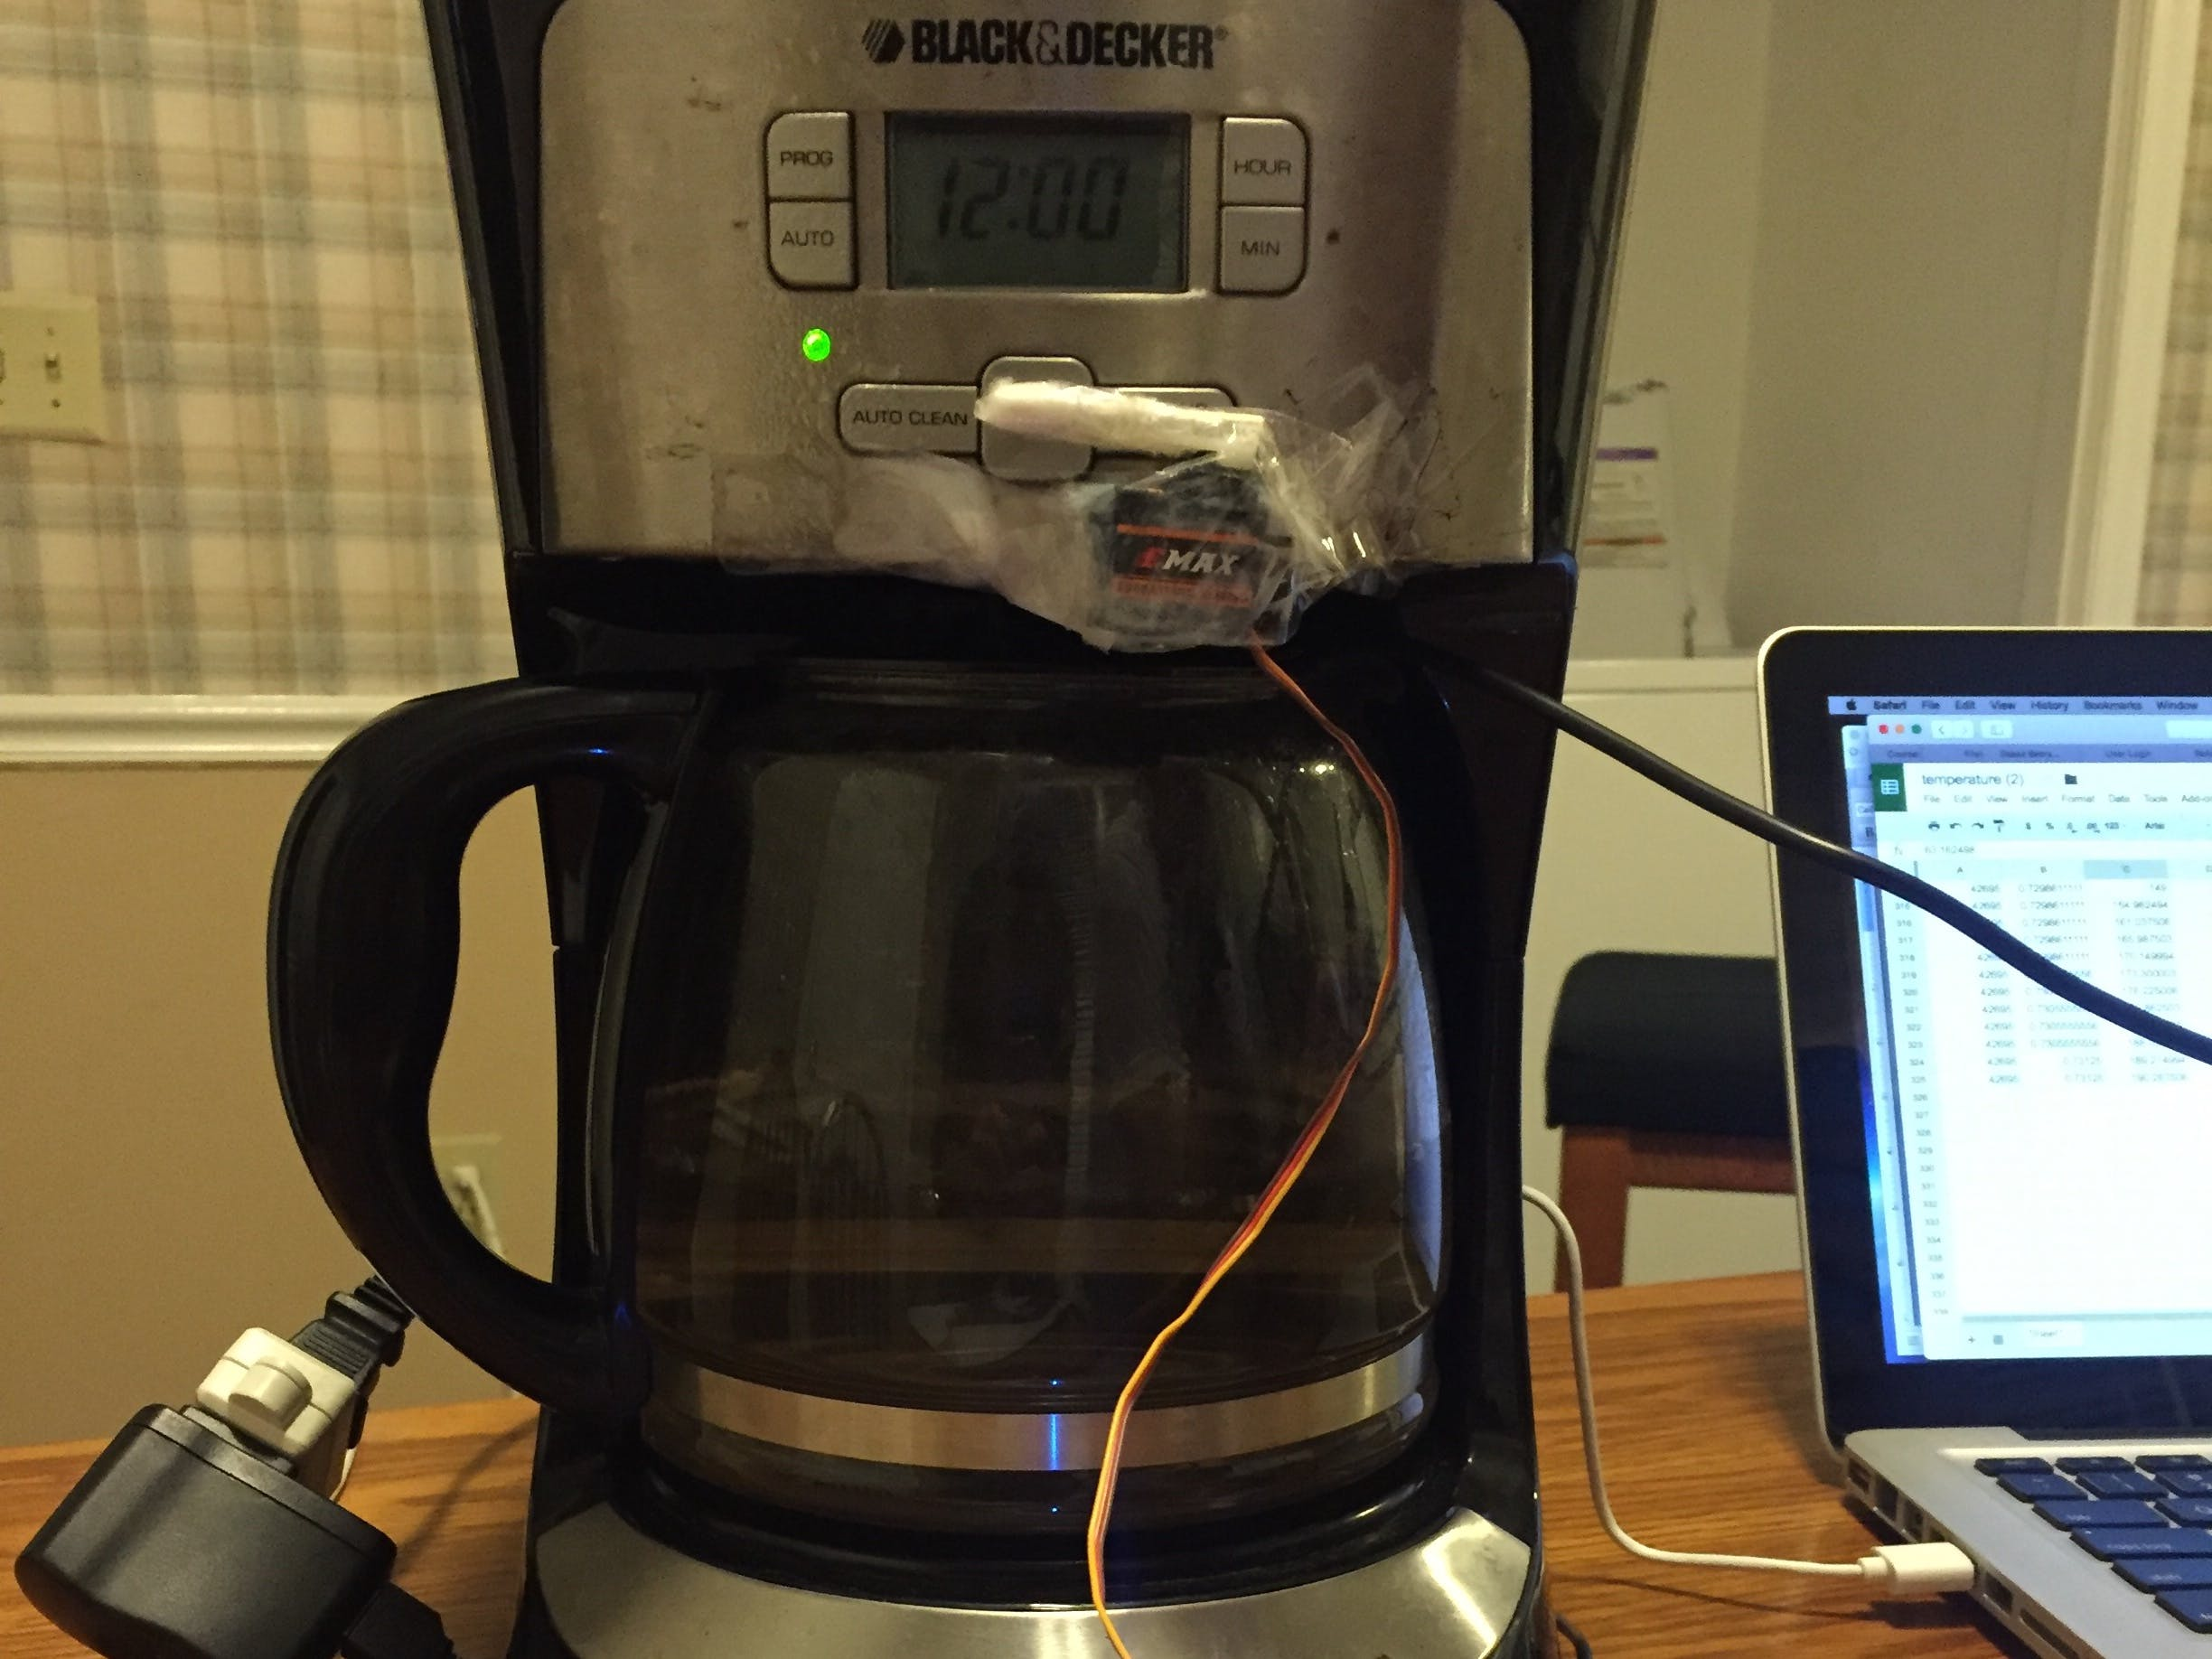 Automated Coffee Maker